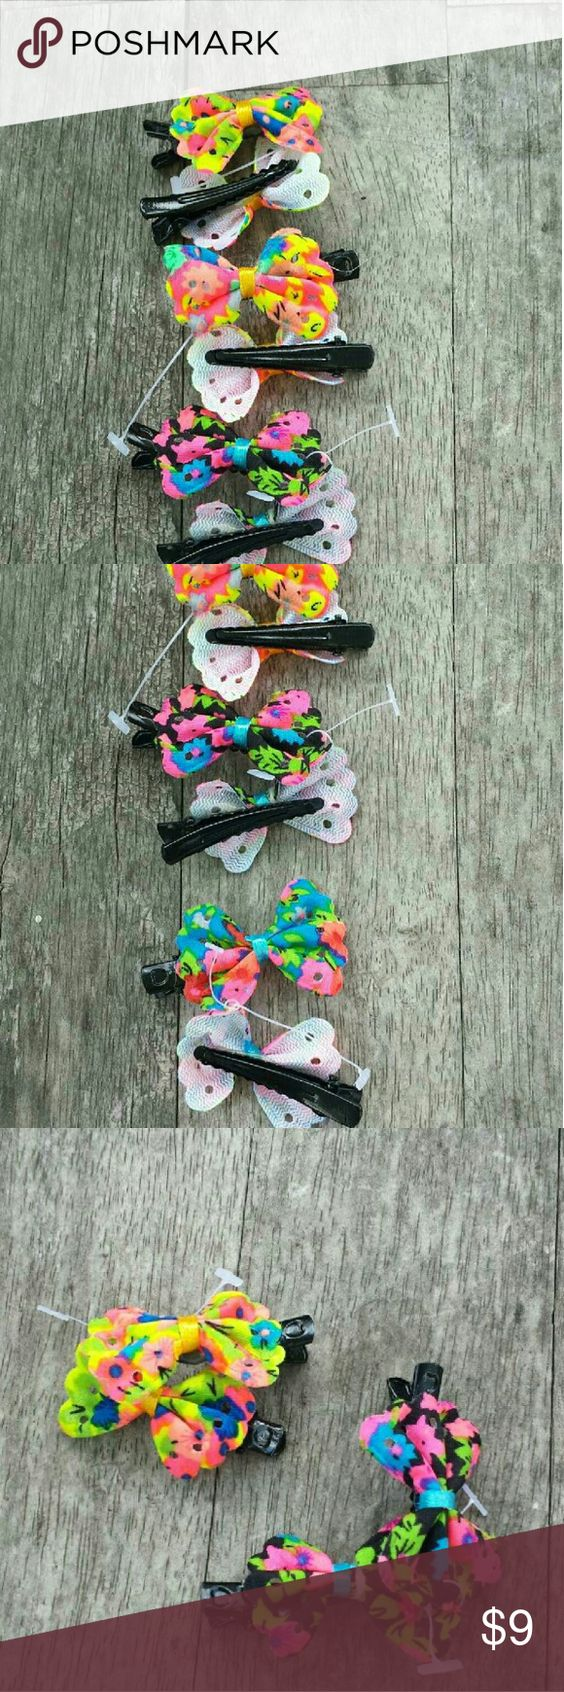 "??8 Neon Colored Bows These bright bows measure 1.5"" & feature neon bows on metal clips designed for fine hair. Each bow is slightly different yet complementary to the others. A bright, cheerful accessory to so many outfits!   #0729-8/14-1 Accessories Hair Accessories"